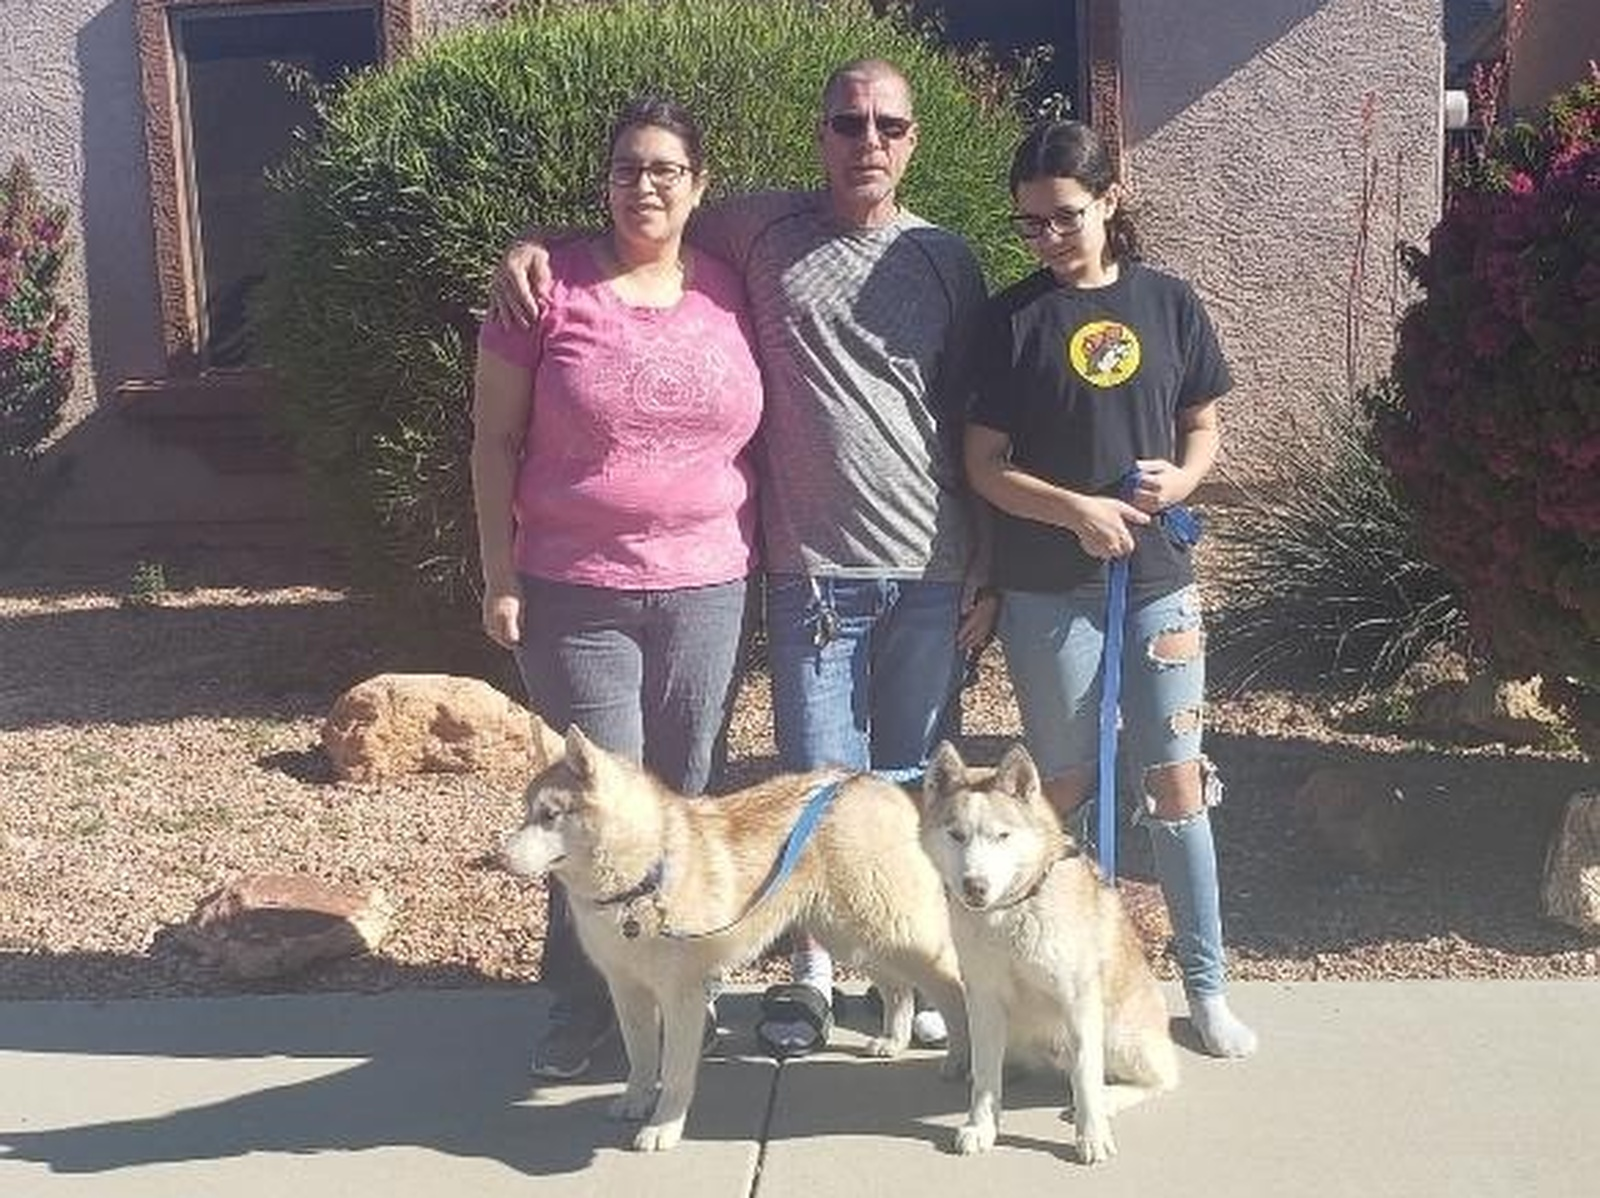 The pets belonging to a Lompoc woman who was shot and killed in March are now in Texas with her family